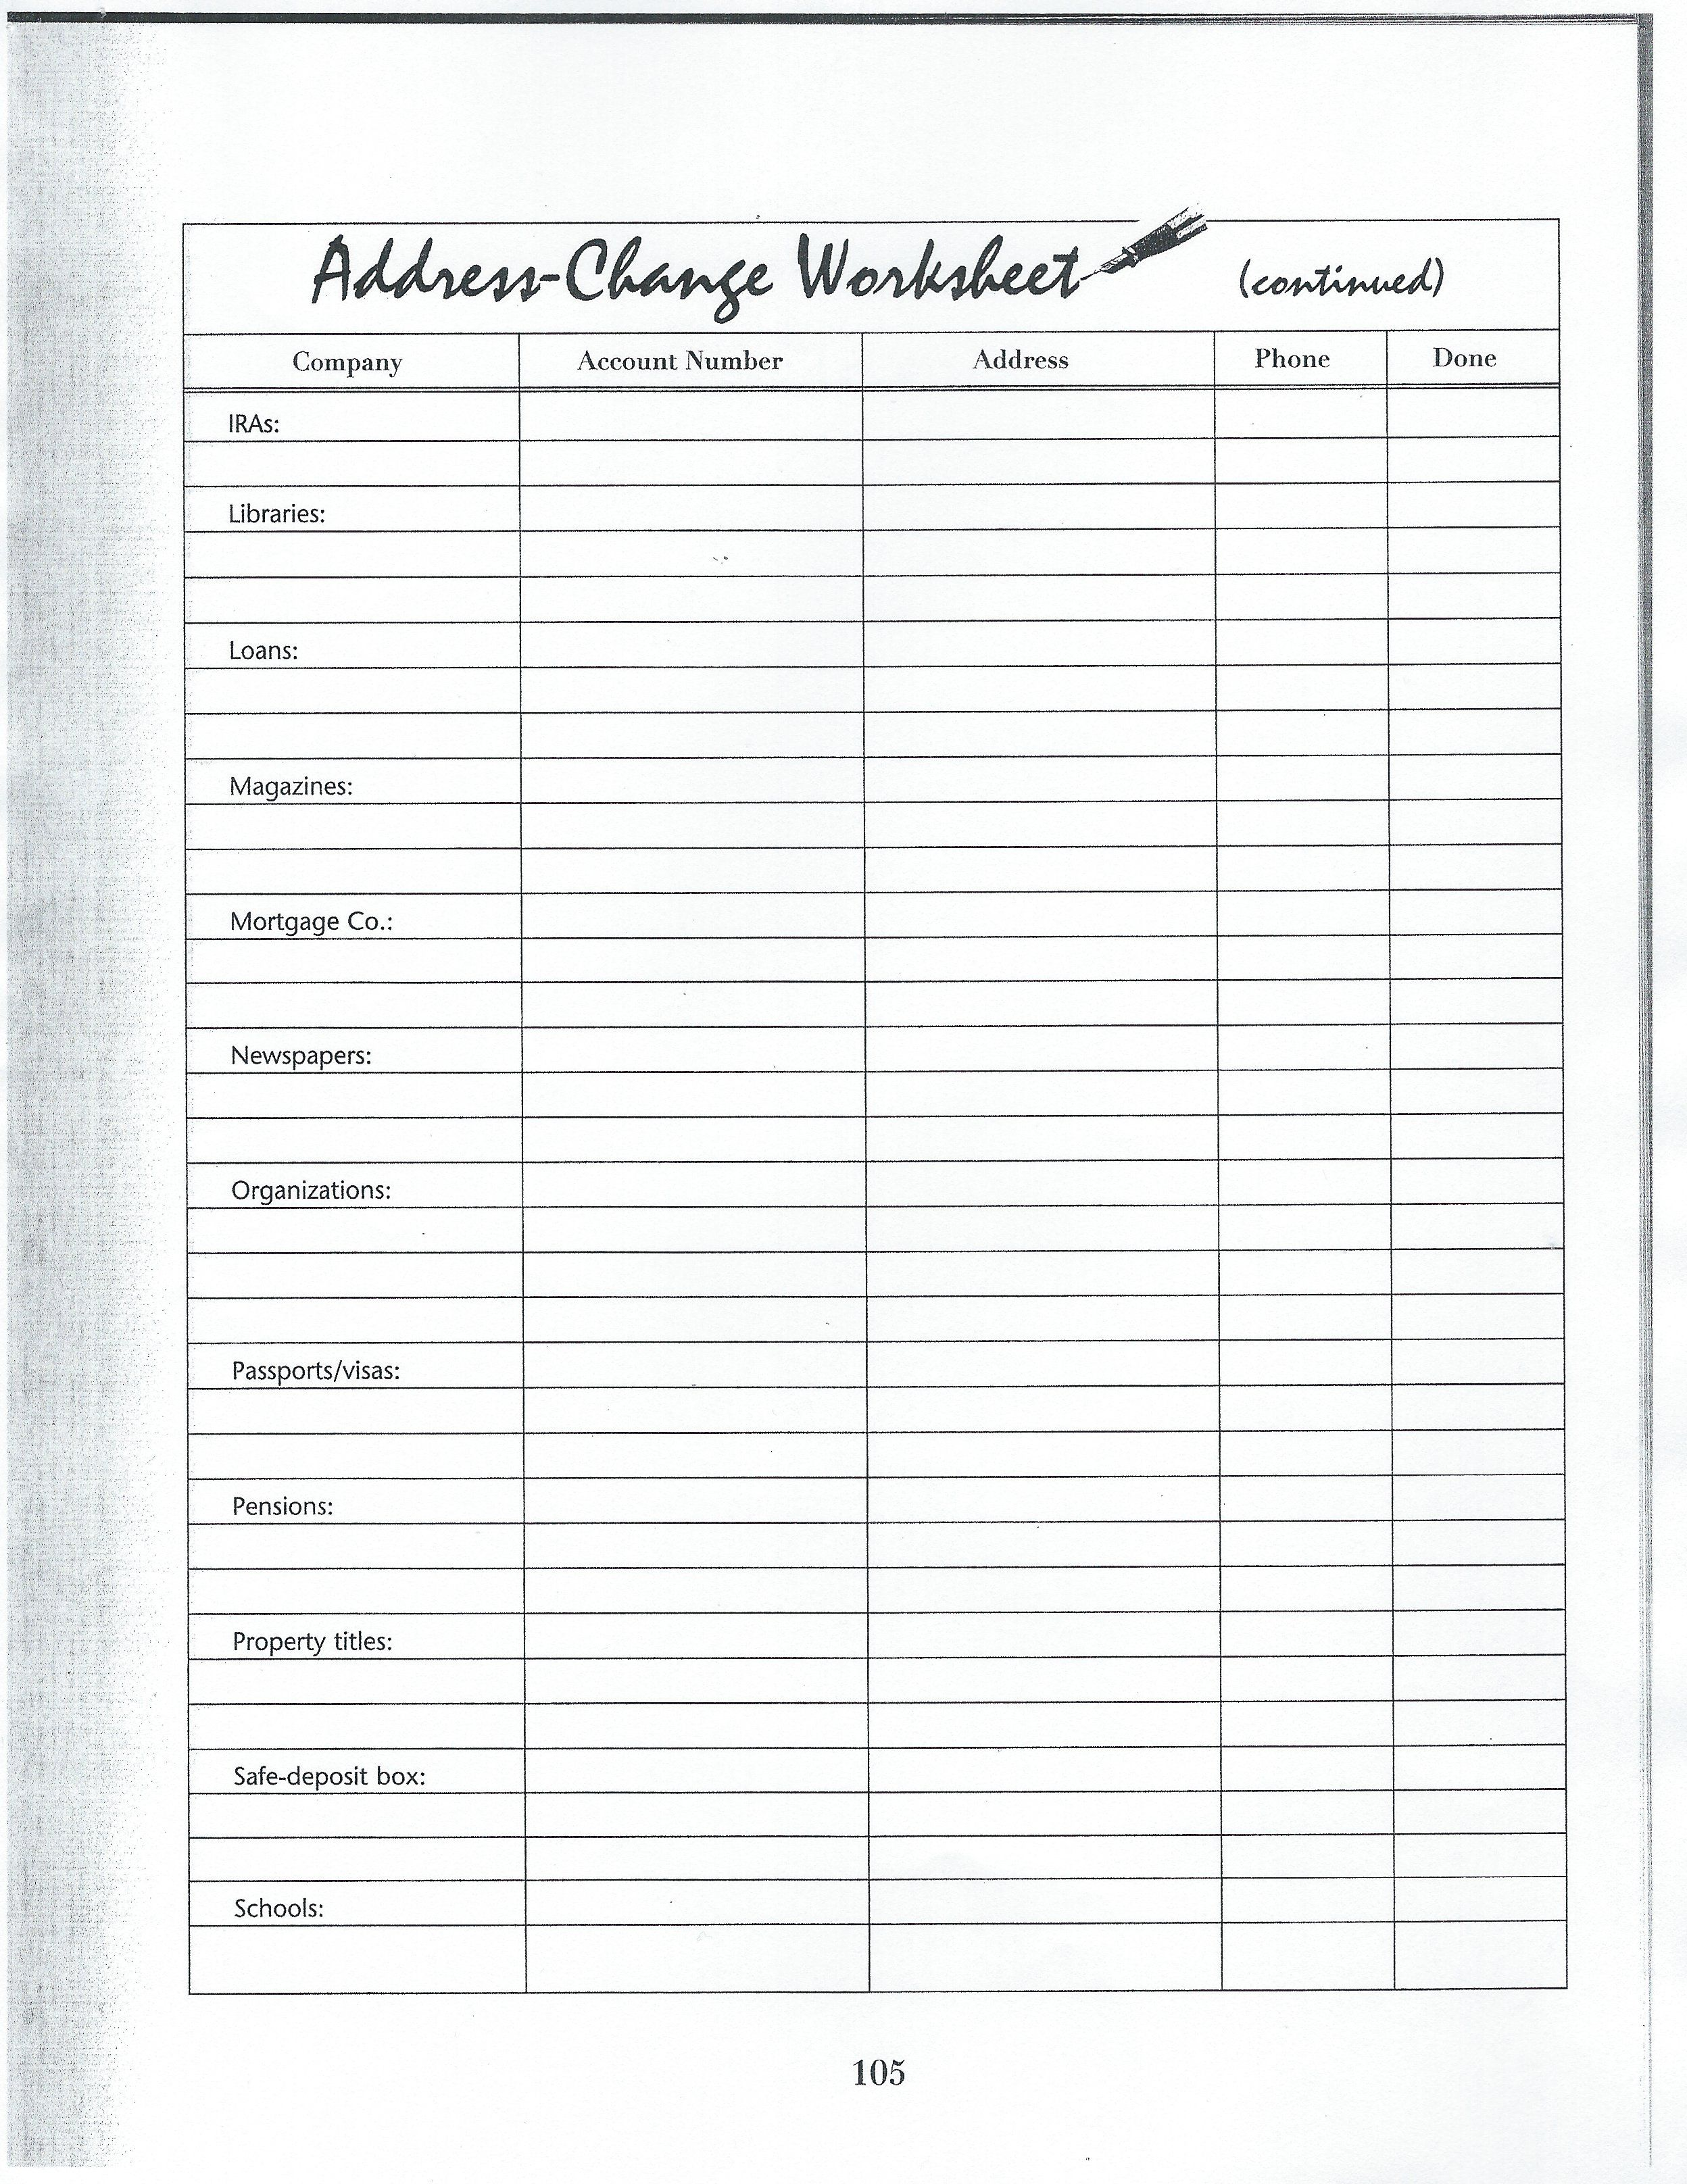 worksheet Organizing Ideas Worksheets address change worksheet 3 bullet journal dayplanner organizing changeorganizing ideasbullet worksheets